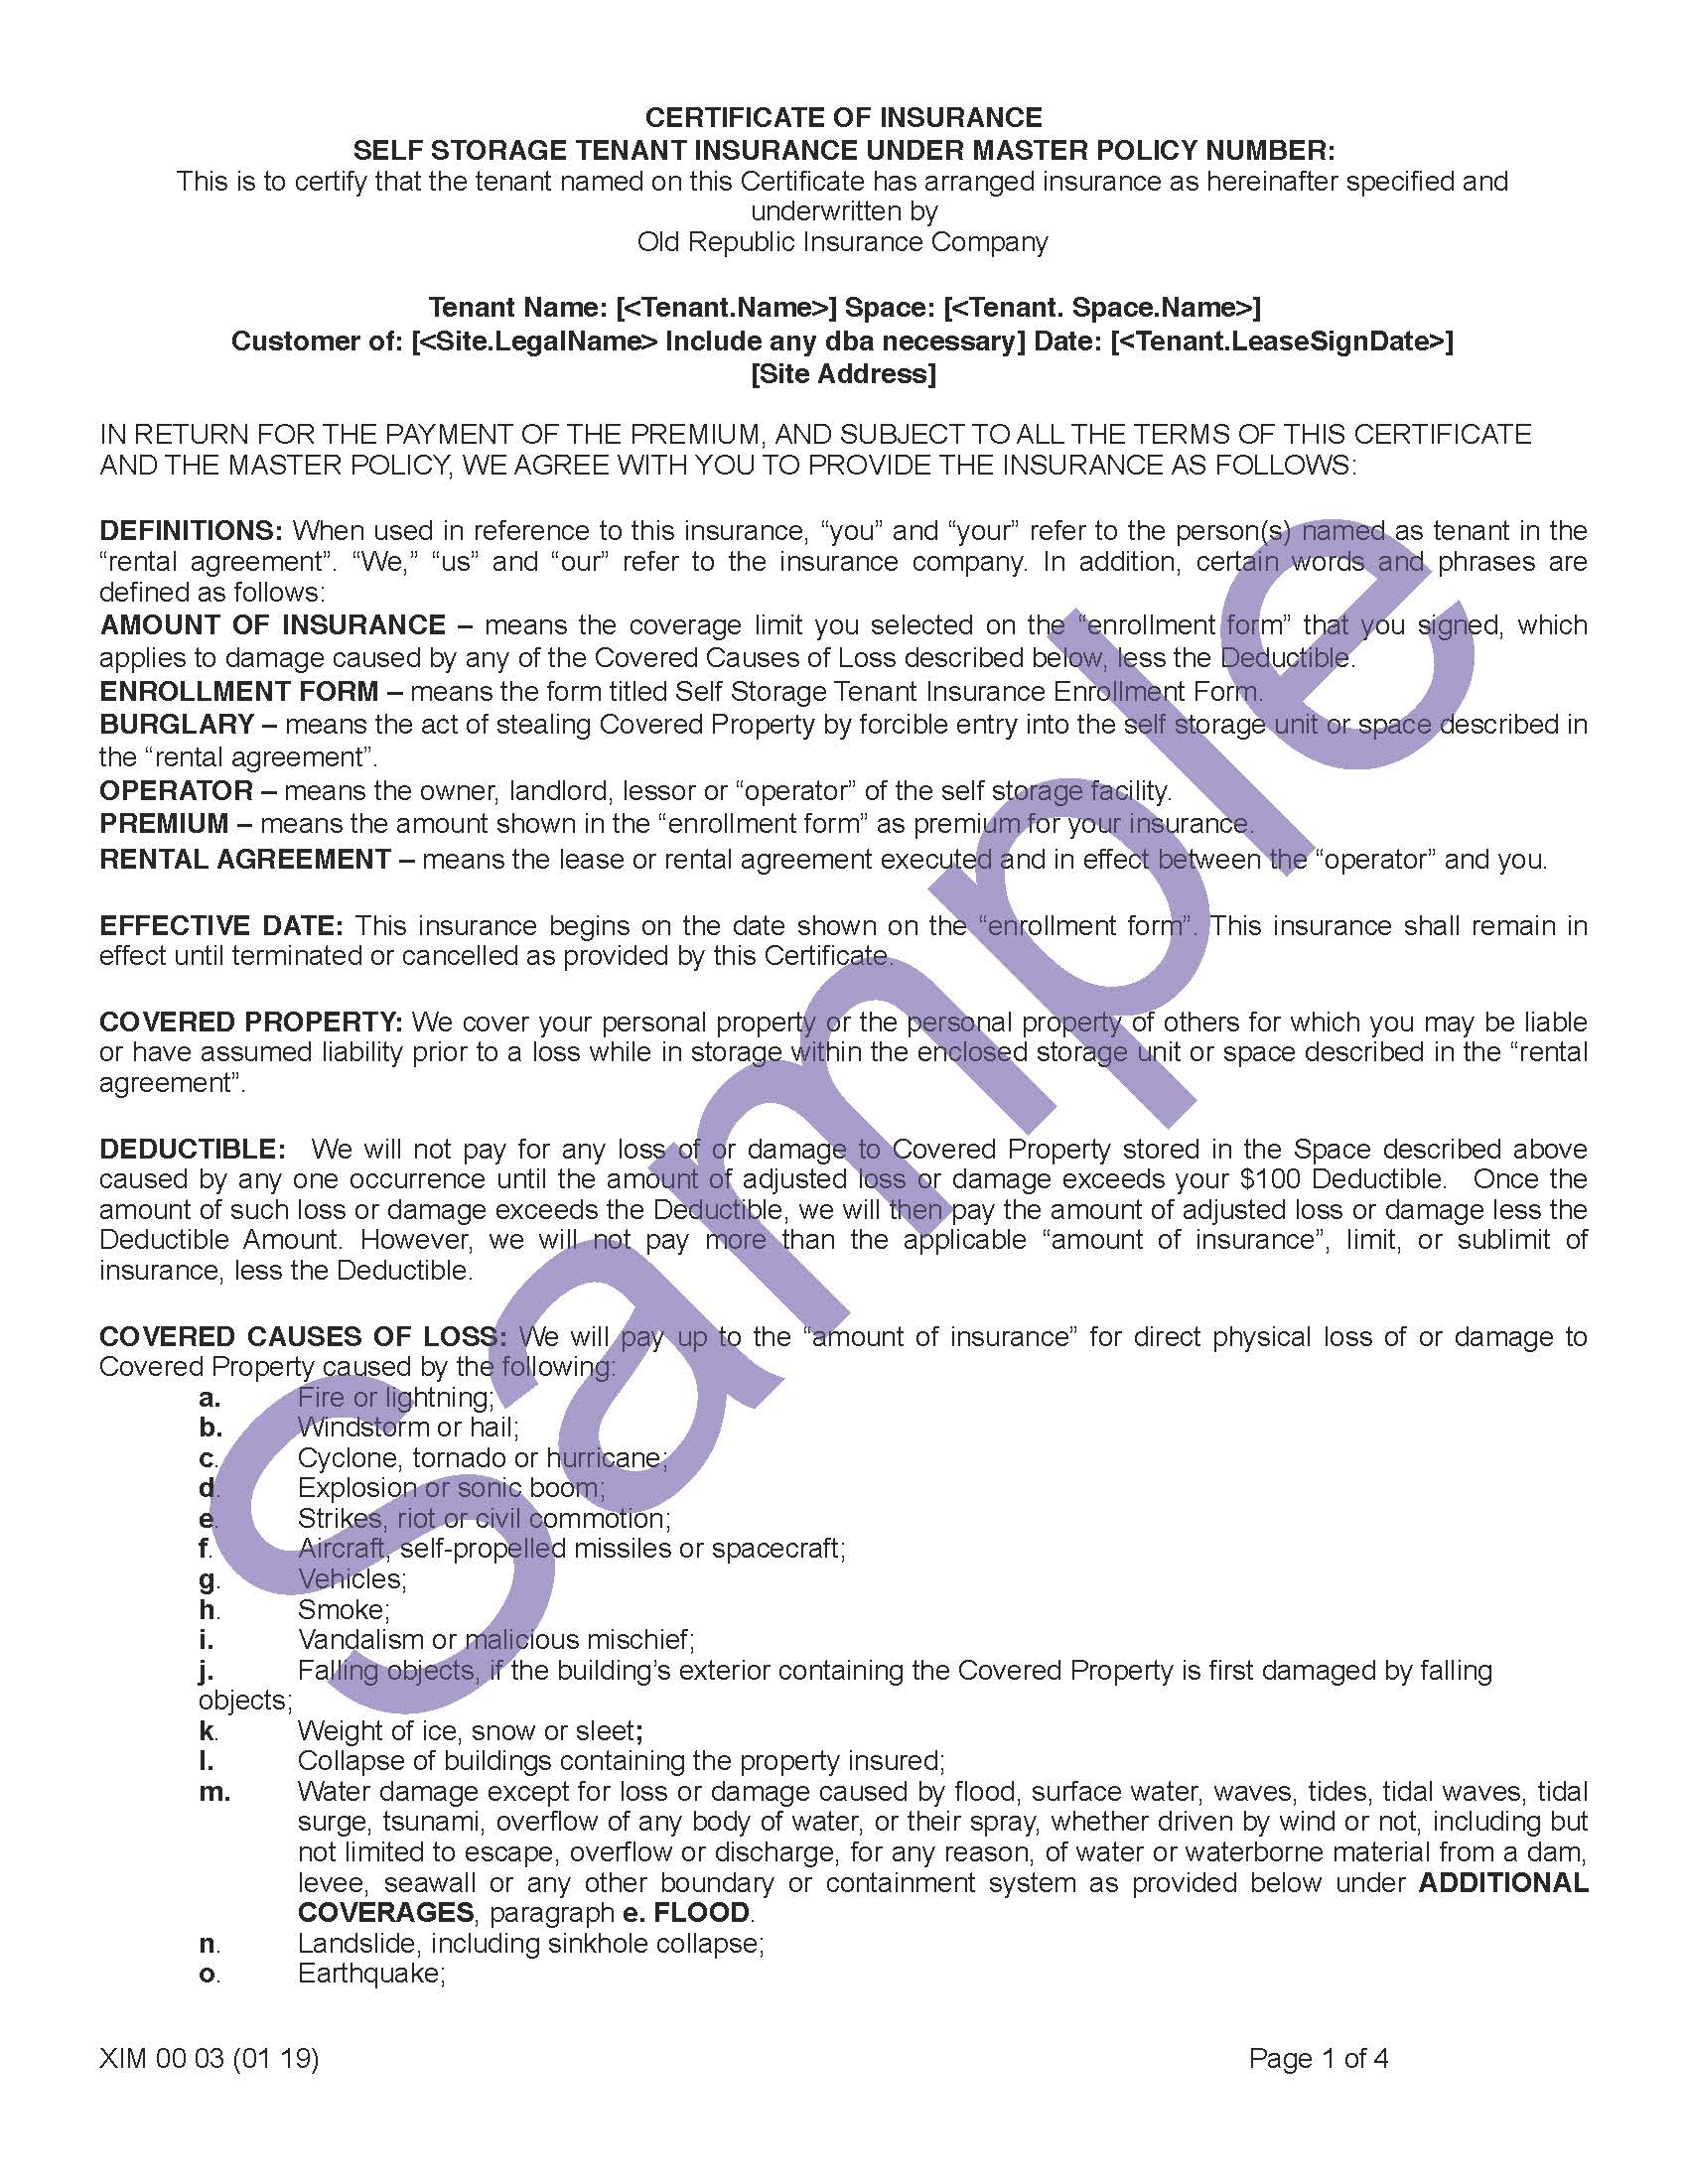 CW XIM 00 03 (01-19) Certificate of InsuranceSample_Page_1.jpg